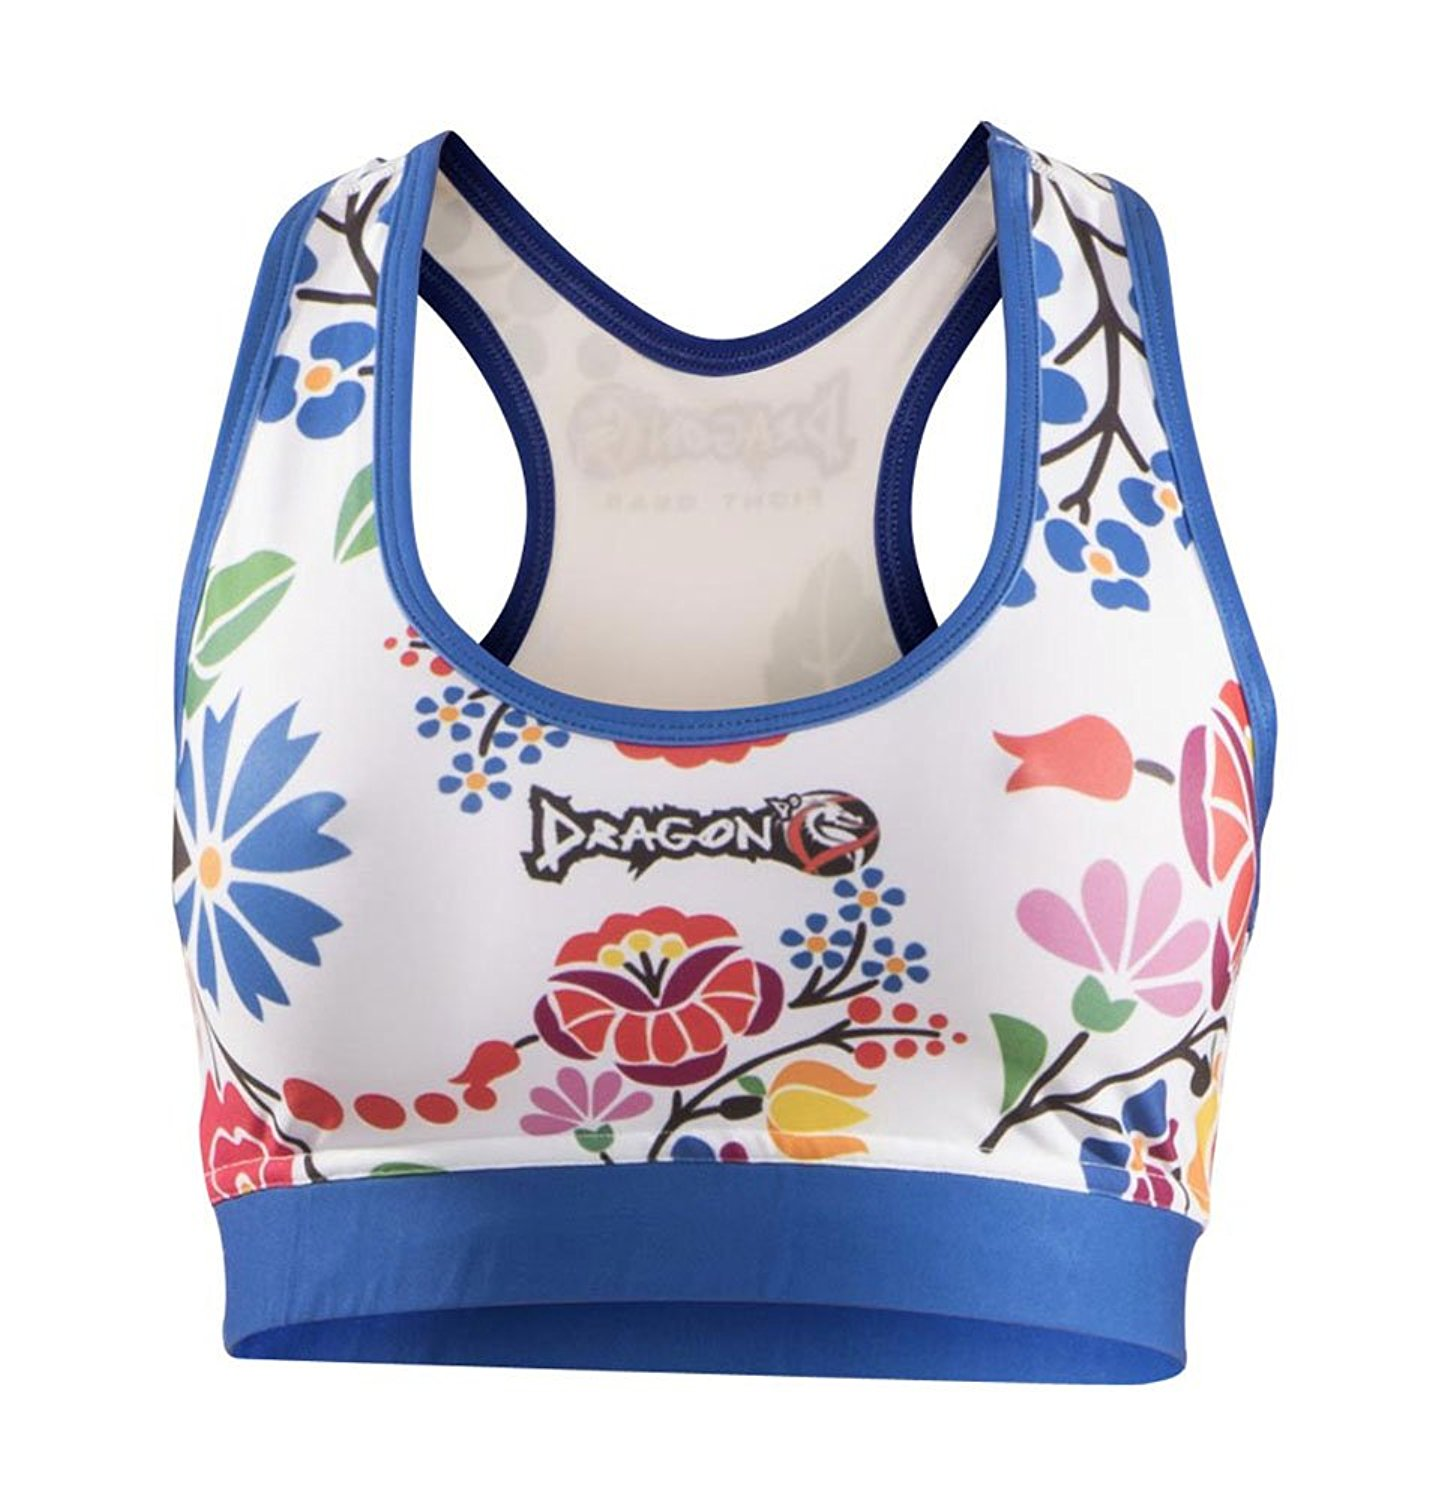 7314f6ec84 Get Quotations · Dragon Do Sports Bra Workout